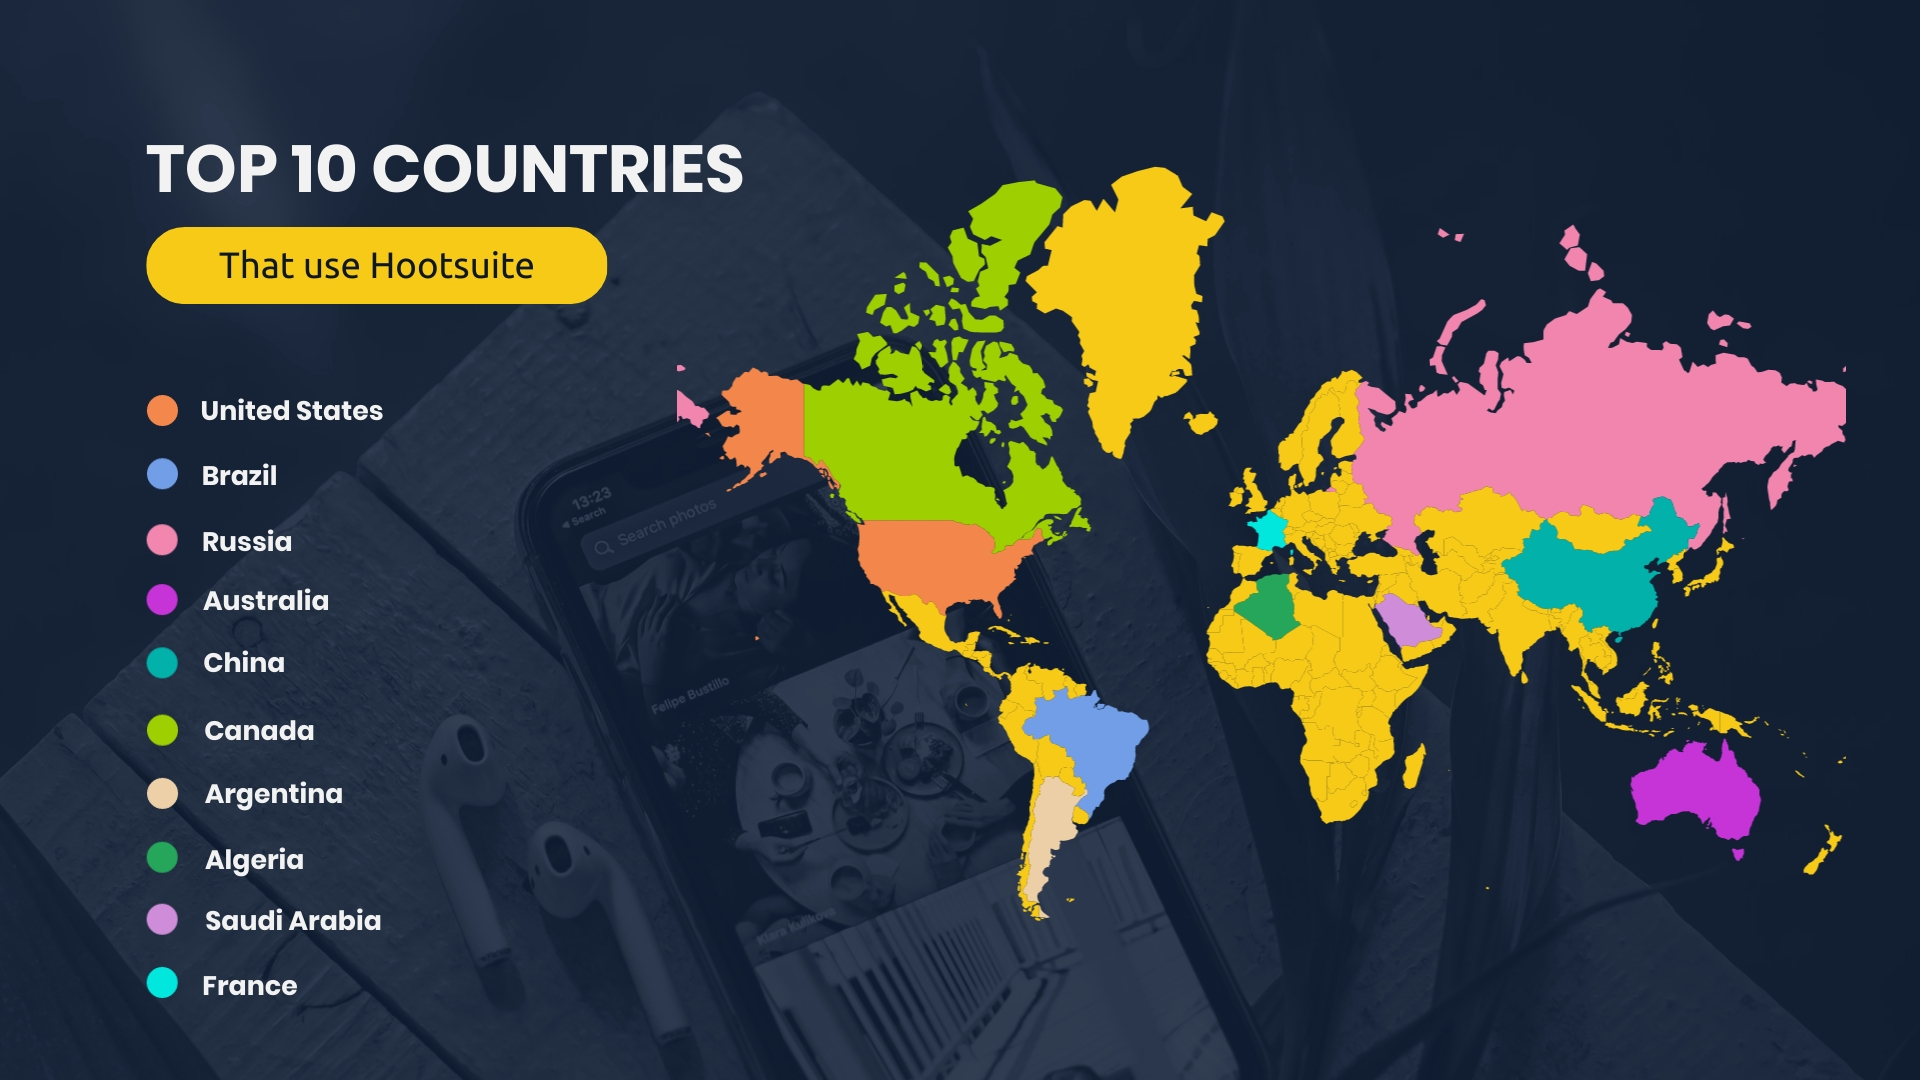 Top 10 Countries Map Template